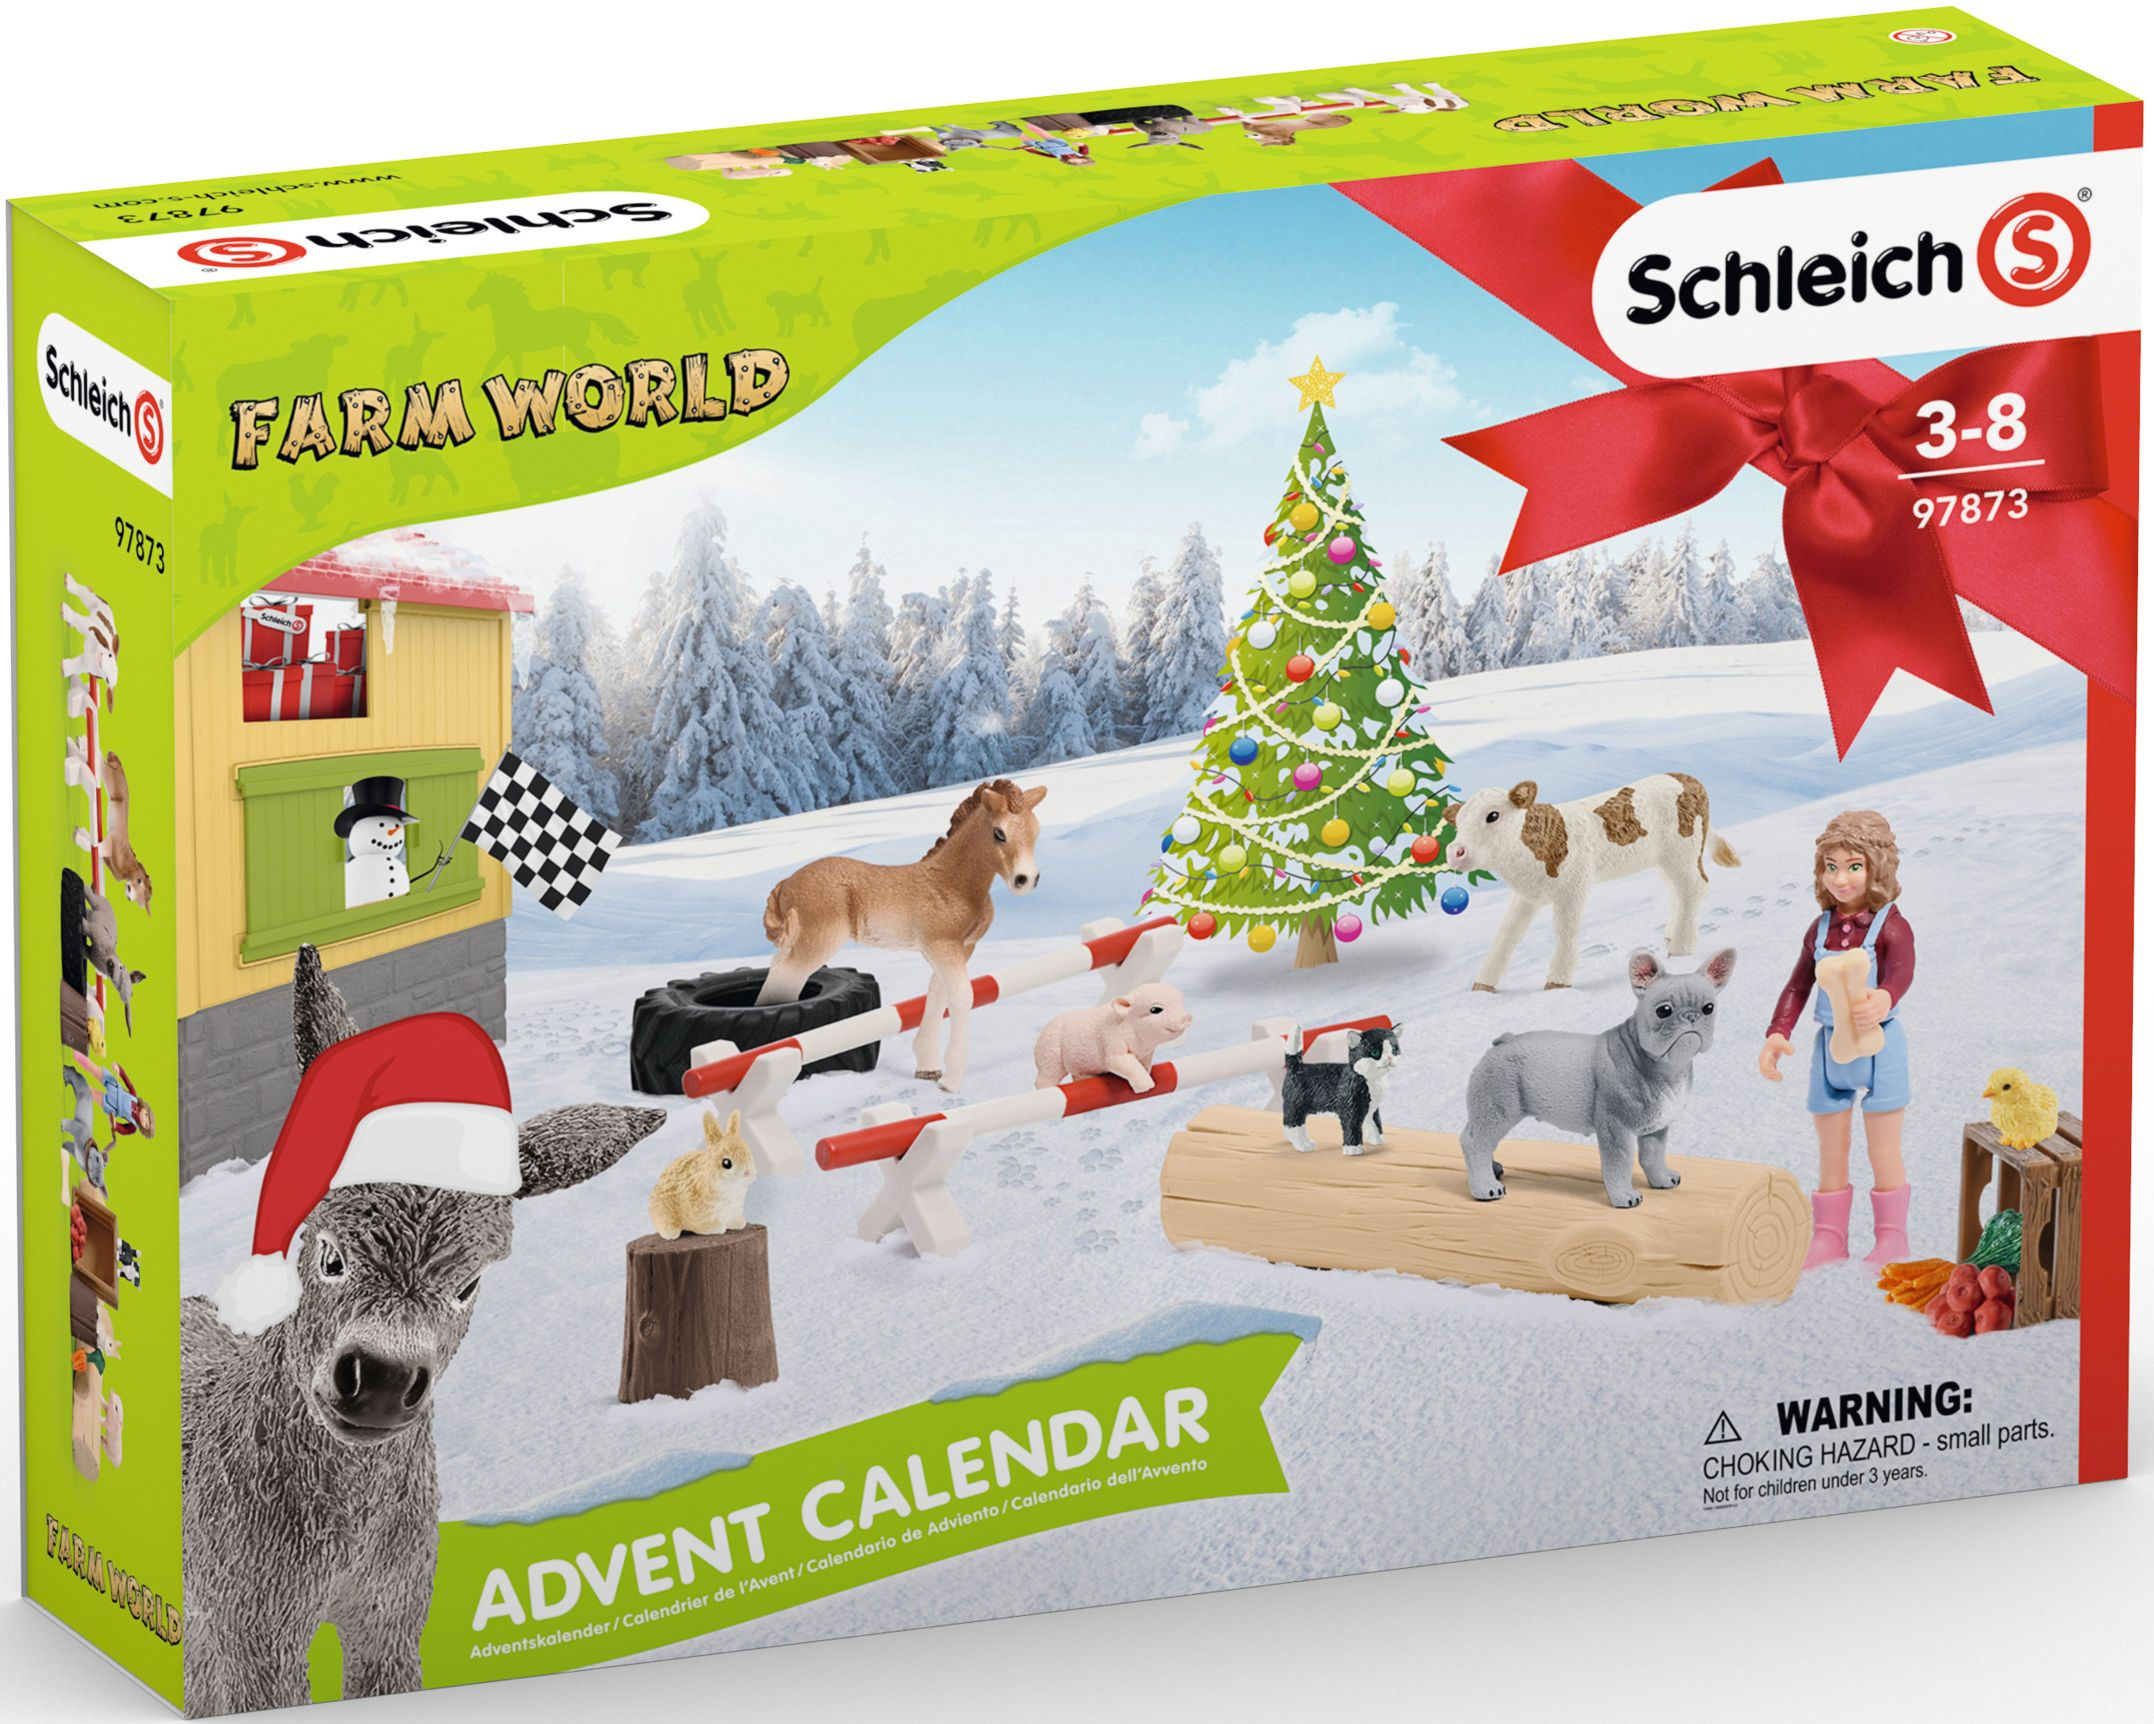 Adventskalender Farm World Schleich 2019